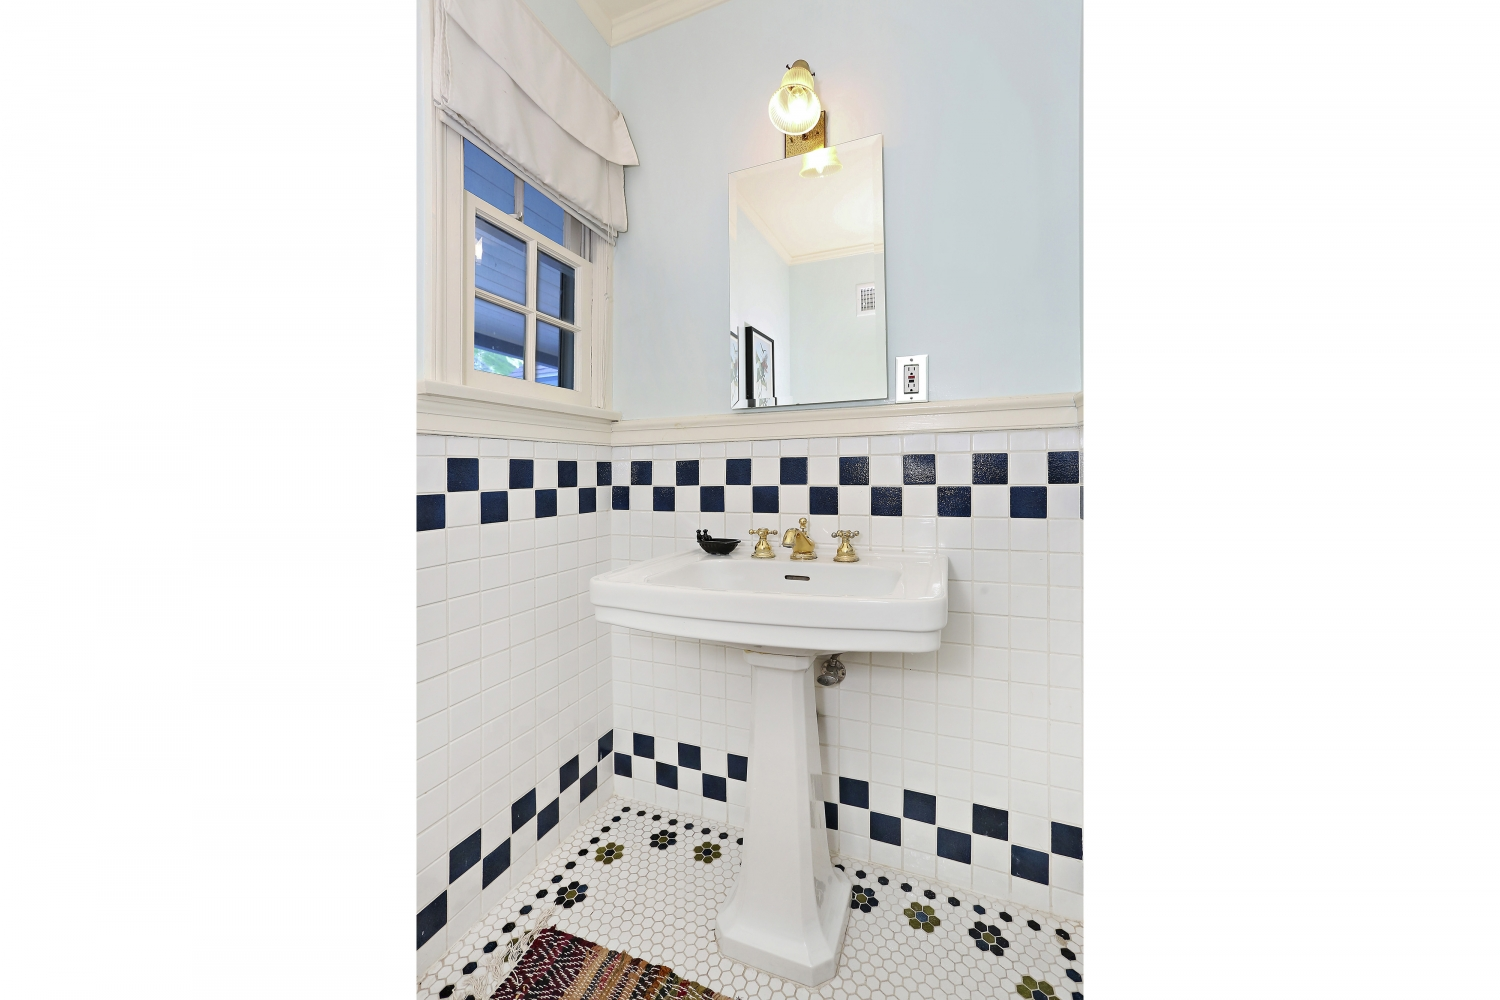 for sale. 2310 E Chevy Chase Dr. Glendale CA - Guest Bathroom